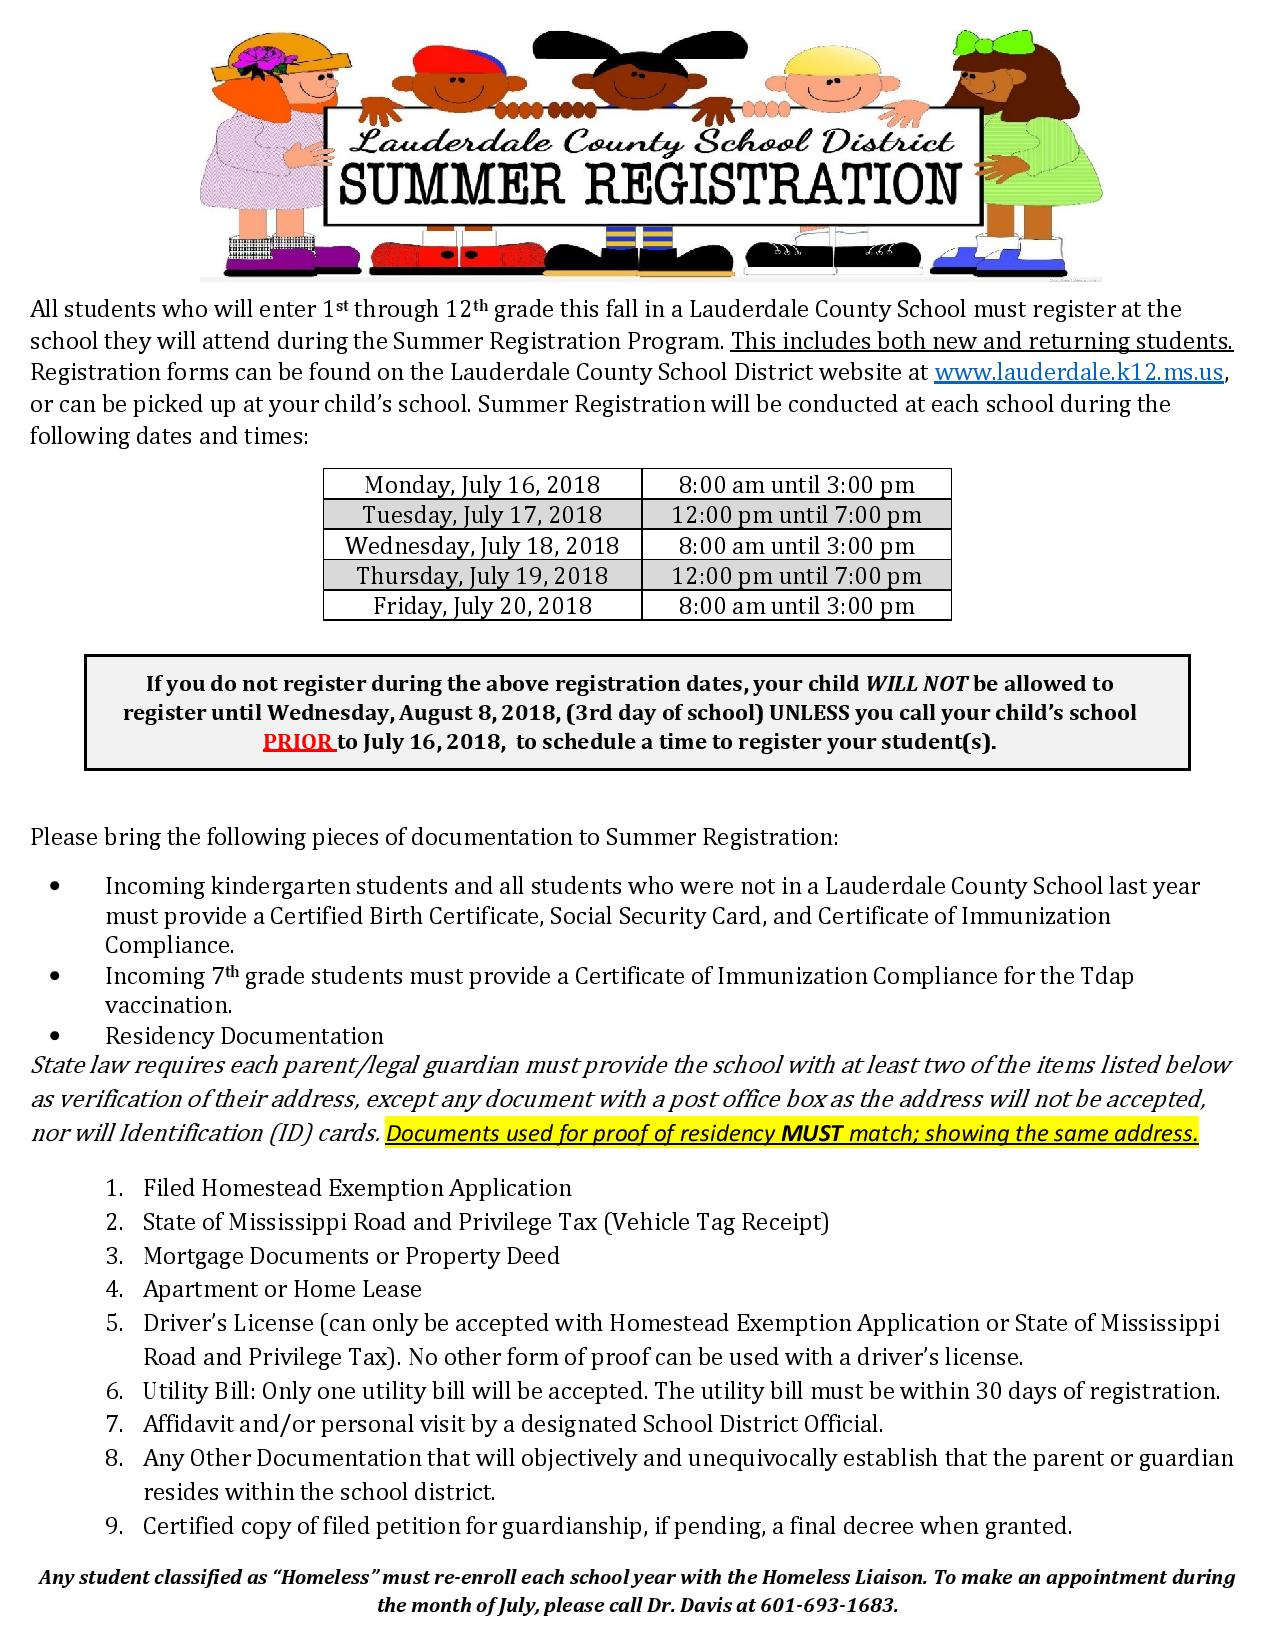 All students who will enter 1st through 12th grade this fall in a Lauderdale County School must register at the school they will attend during the Summer Registration Program. This includes both new and returning students. Registration forms can be found on the Lauderdale County School District website at www.lauderdale.k12.ms.us, or can be picked up at your child's school. Summer Registration will be conducted at each school during the following dates and times: Monday, July 16, 20188:00 am until 3:00 pm Tuesday, July 17, 201812:00 pm until 7:00 pm Wednesday, July 18, 20188:00 am until 3:00 pm Thursday, July 19, 201812:00 pm until 7:00 pm Friday, July 20, 20188:00 am until 3:00 pm  If you do not register during the above registration dates, your child WILL NOT be allowed to register until Wednesday, August 8, 2018, (3rd day of school) UNLESS you call your child's school PRIOR to July 16, 2018,  to schedule a time to register your student(s).  Please bring the following pieces of documentation to Summer Registration: •Incoming kindergarten students and all students who were not in a Lauderdale County School last year must provide a Certified Birth Certificate, Social Security Card, and Certificate of Immunization Compliance. •Incoming 7th grade students must provide a Certificate of Immunization Compliance for the Tdap vaccination. •Residency Documentation State law requires each parent/legal guardian must provide the school with at least two of the items listed below as verification of their address, except any document with a post office box as the address will not be accepted, nor will Identification (ID) cards. Documents used for proof of residency MUST match; showing the same address.  1.Filed Homestead Exemption Application 2.State of Mississippi Road and Privilege Tax (Vehicle Tag Receipt) 3.Mortgage Documents or Property Deed 4.Apartment or Home Lease 5.Driver's License (can only be accepted with Homestead Exemption Application or State of Mississippi Road a